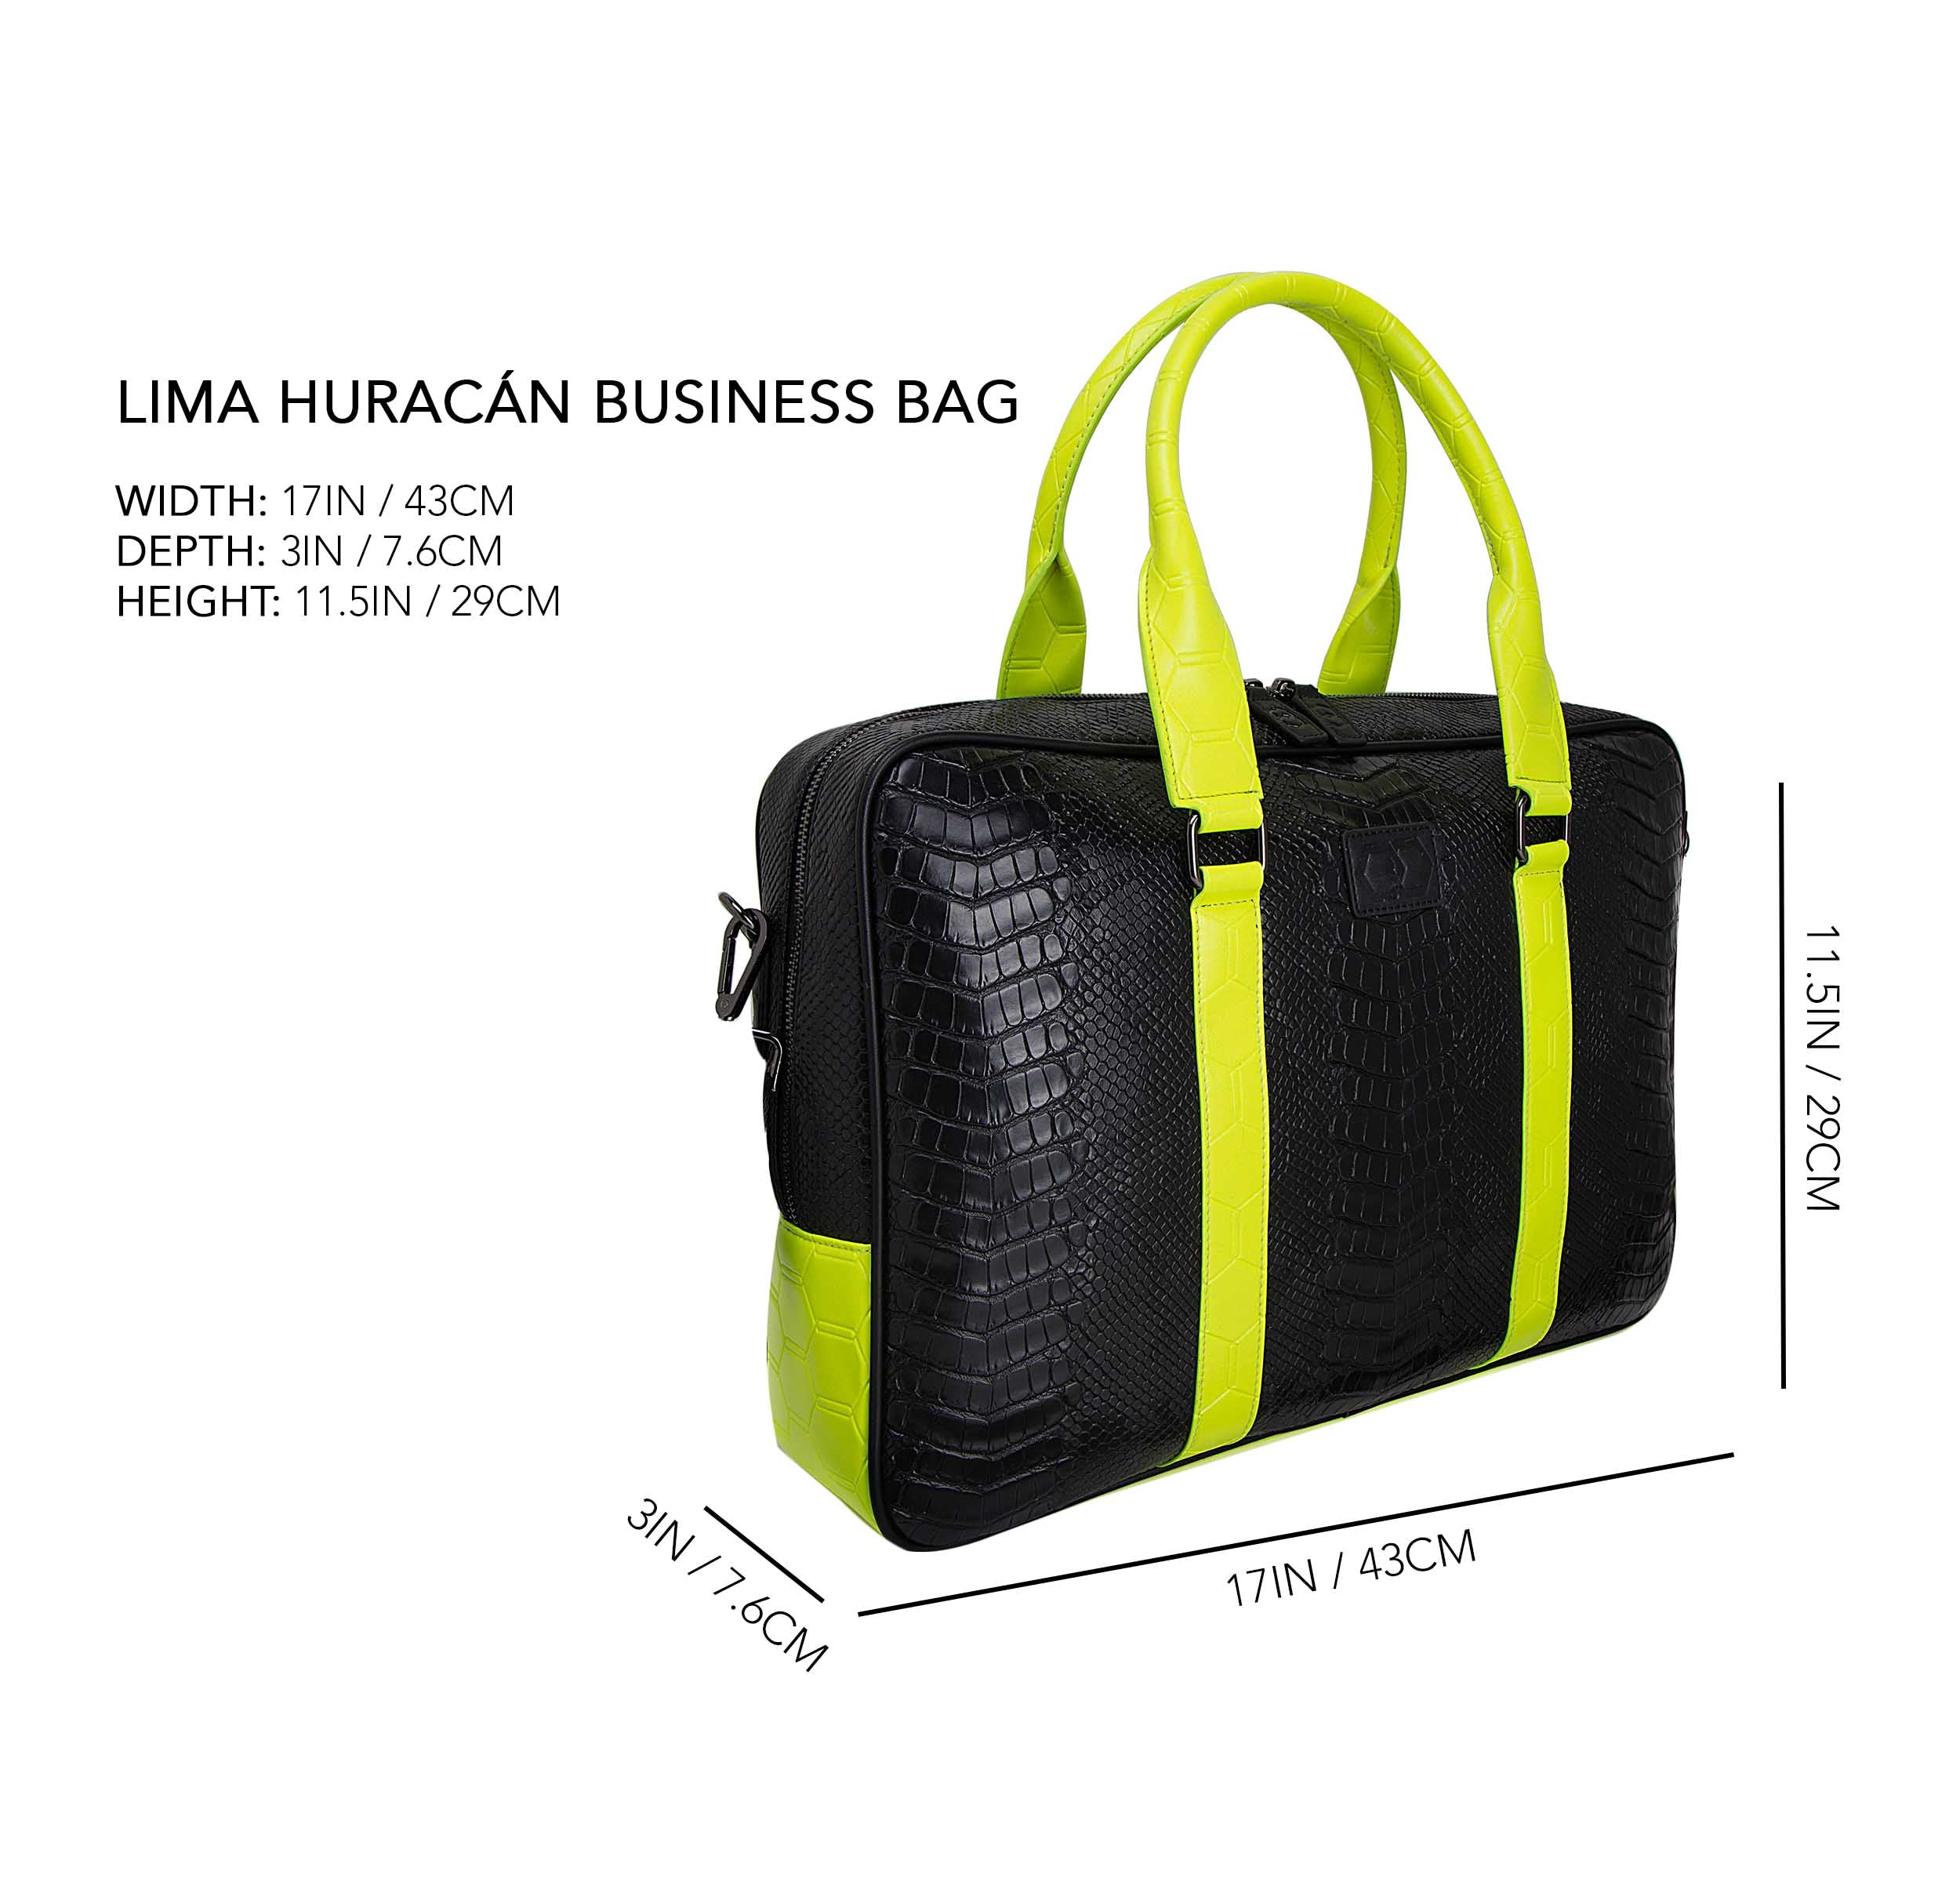 Lima Huracán Business Bag